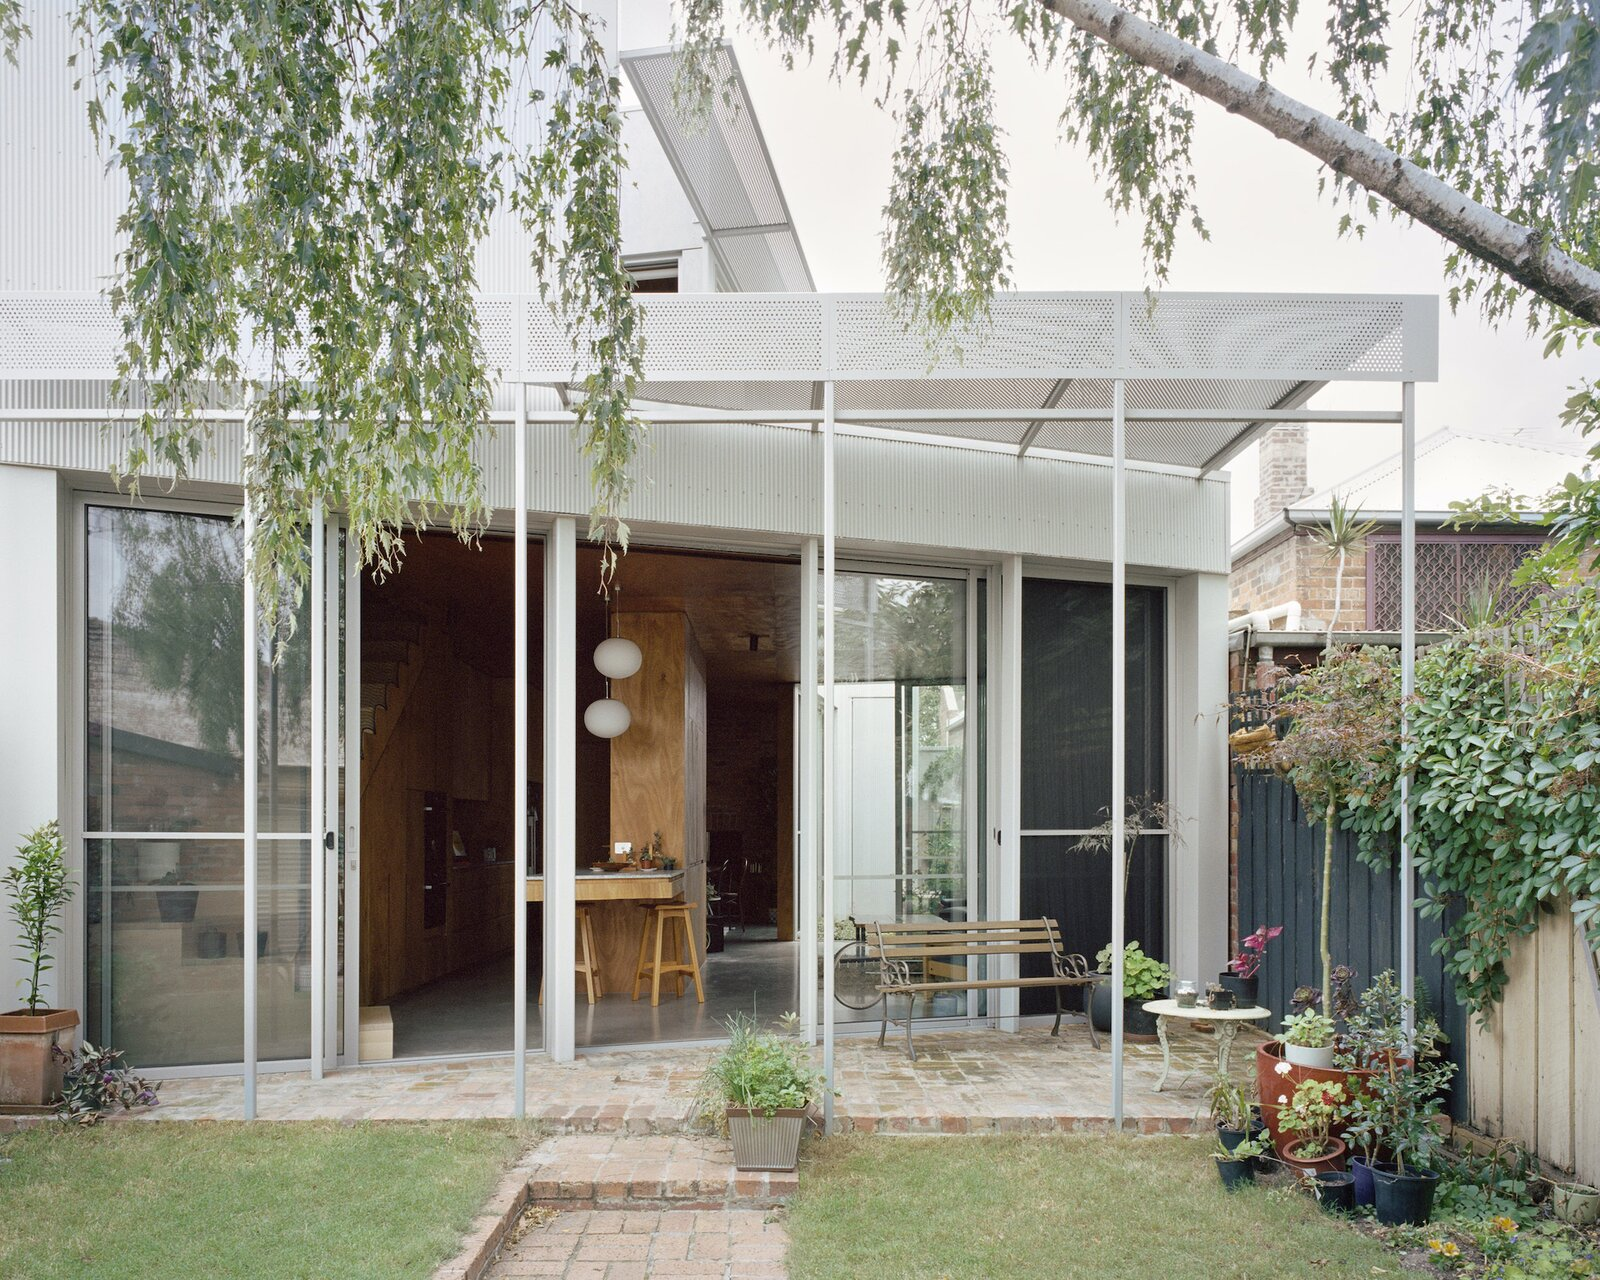 Exterior of Terrace House 1 by Dreamer